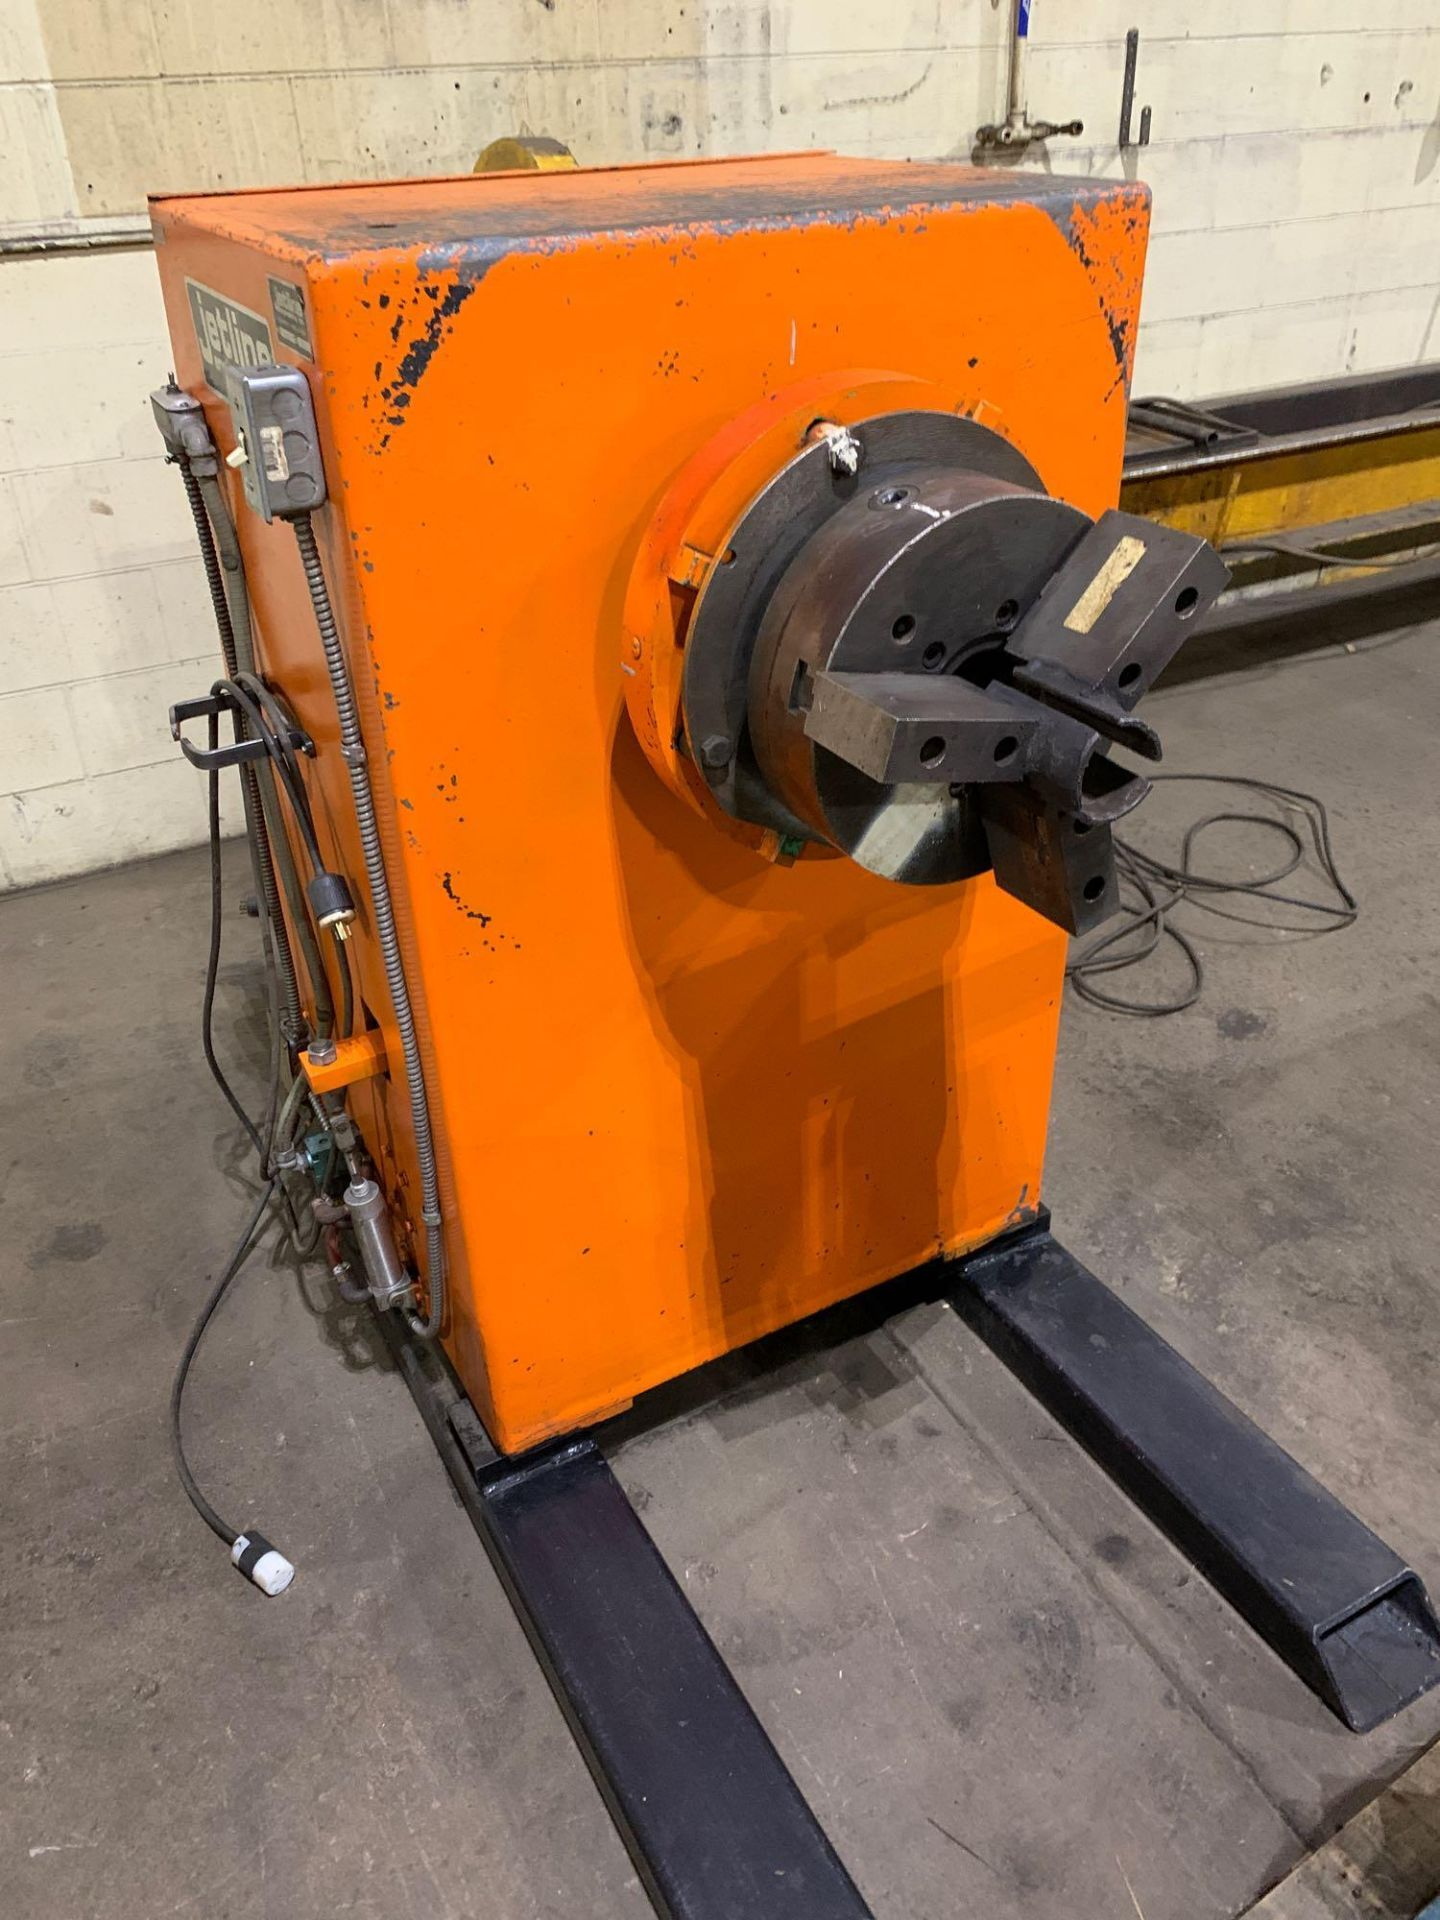 Jetline Welding Positioner Model CU5-216 Serial Number: 07625 Pipe Weld Positioner with Tail Stock I - Image 6 of 15